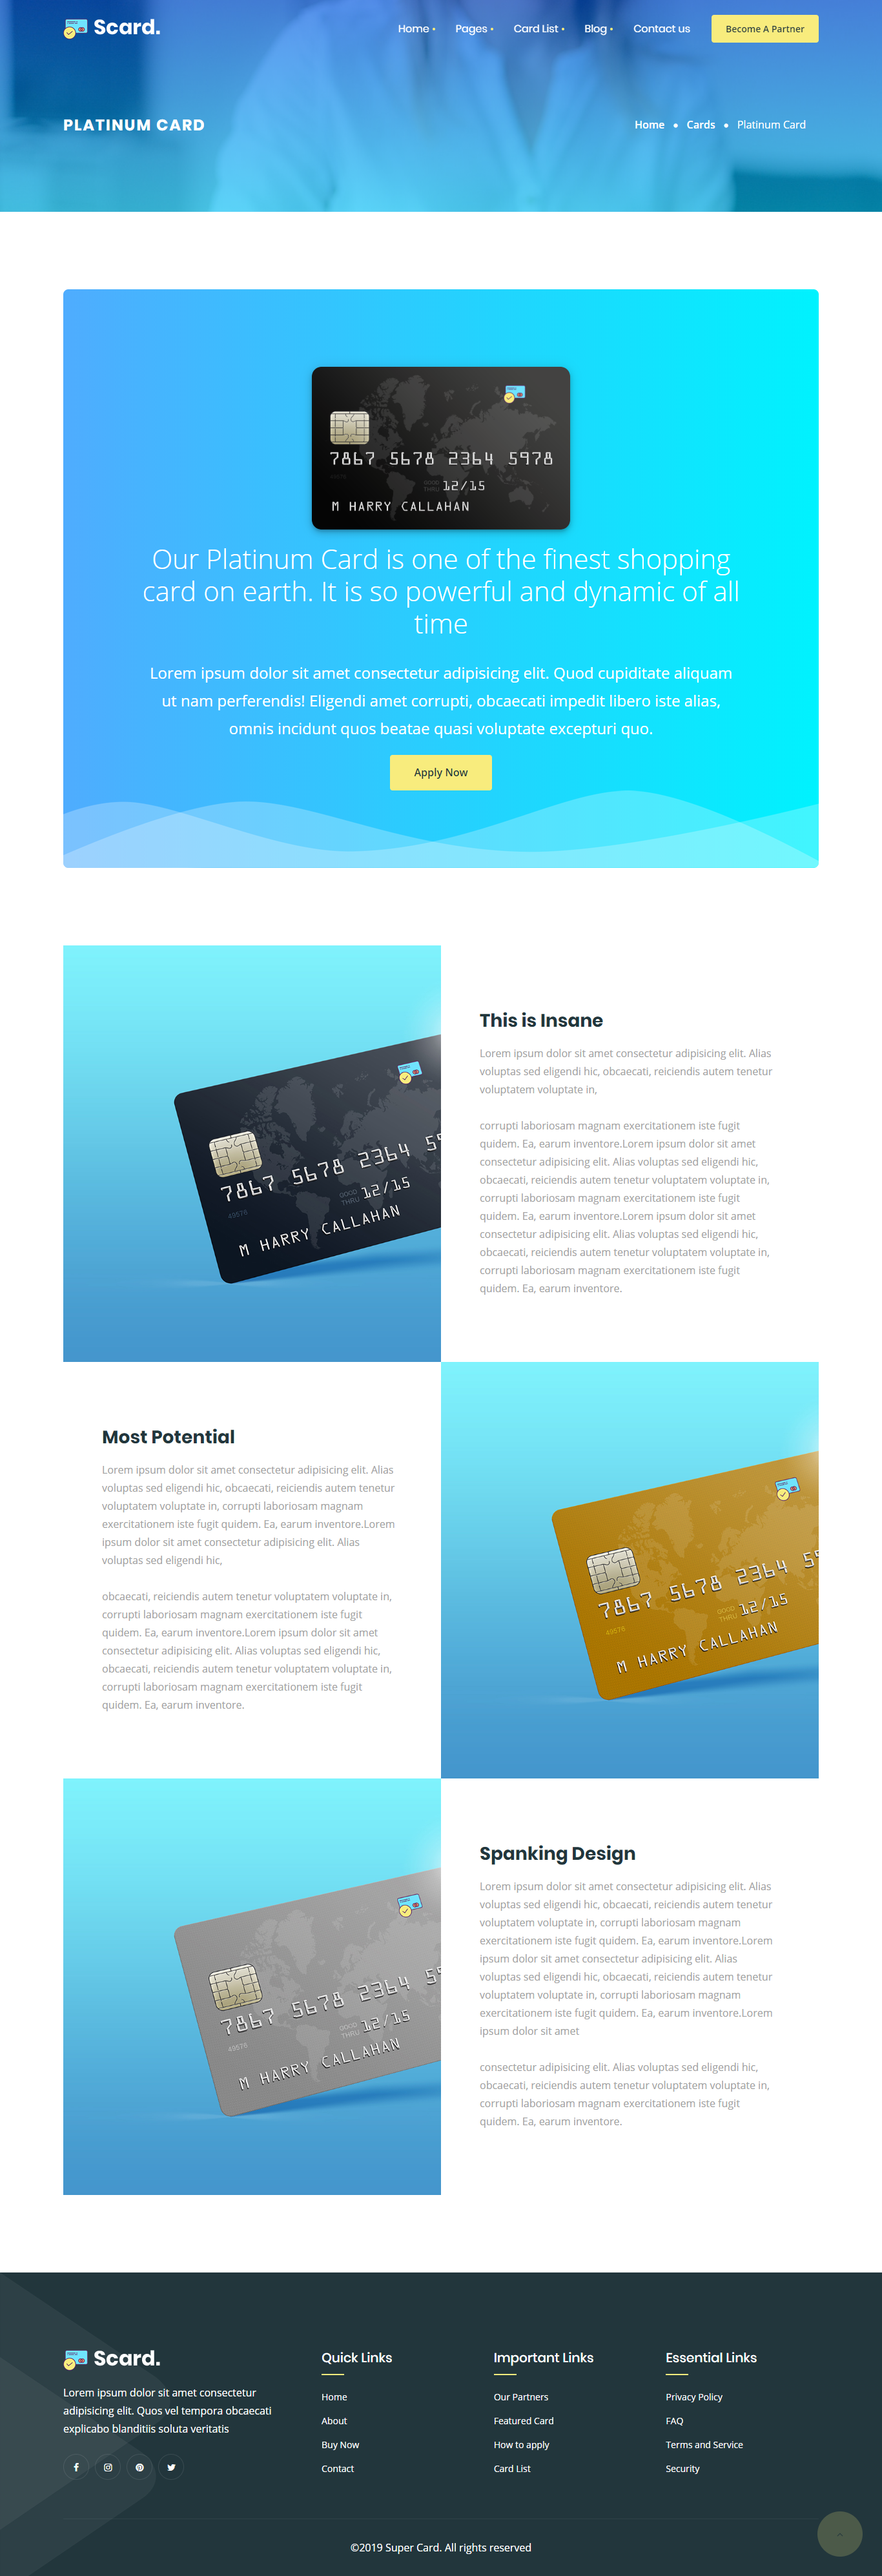 Scard Shopping Card Html Template Ad Shopping Scard Card Template Shopping Card Templates Cards